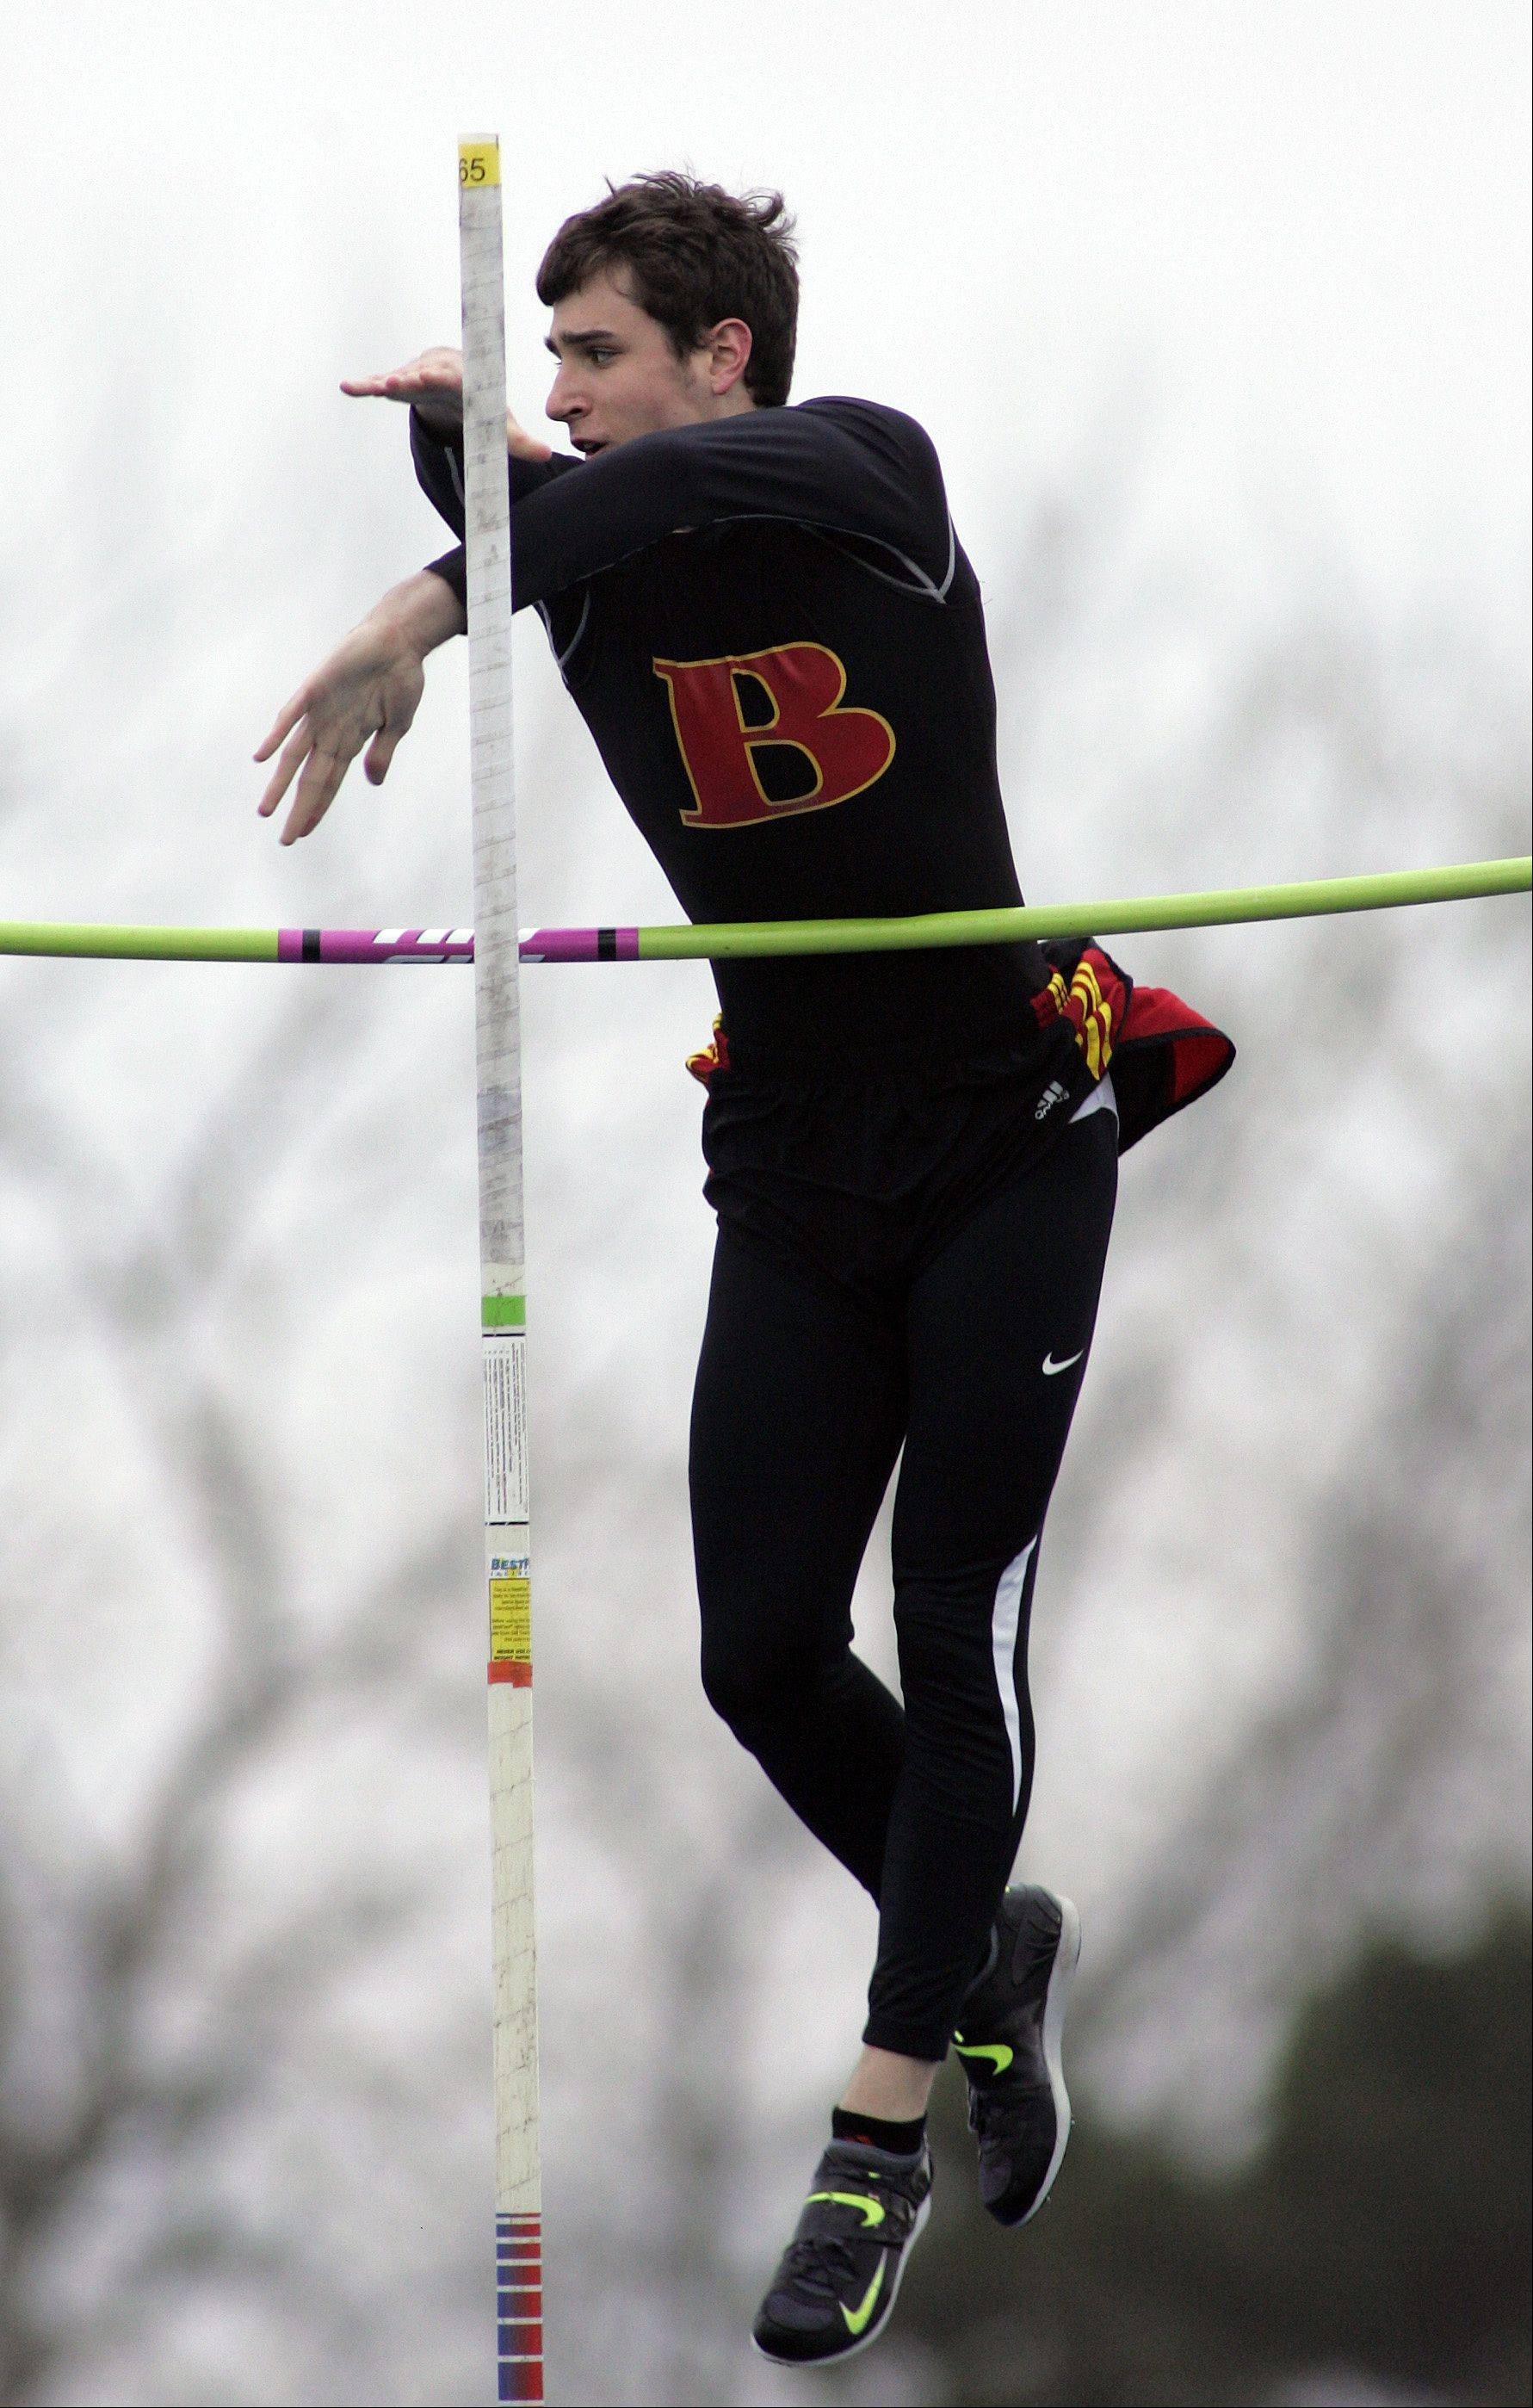 Batavia's RJ Viereckl competes in the pole vault during the Kane County boys track meet Friday at Burlington Central.